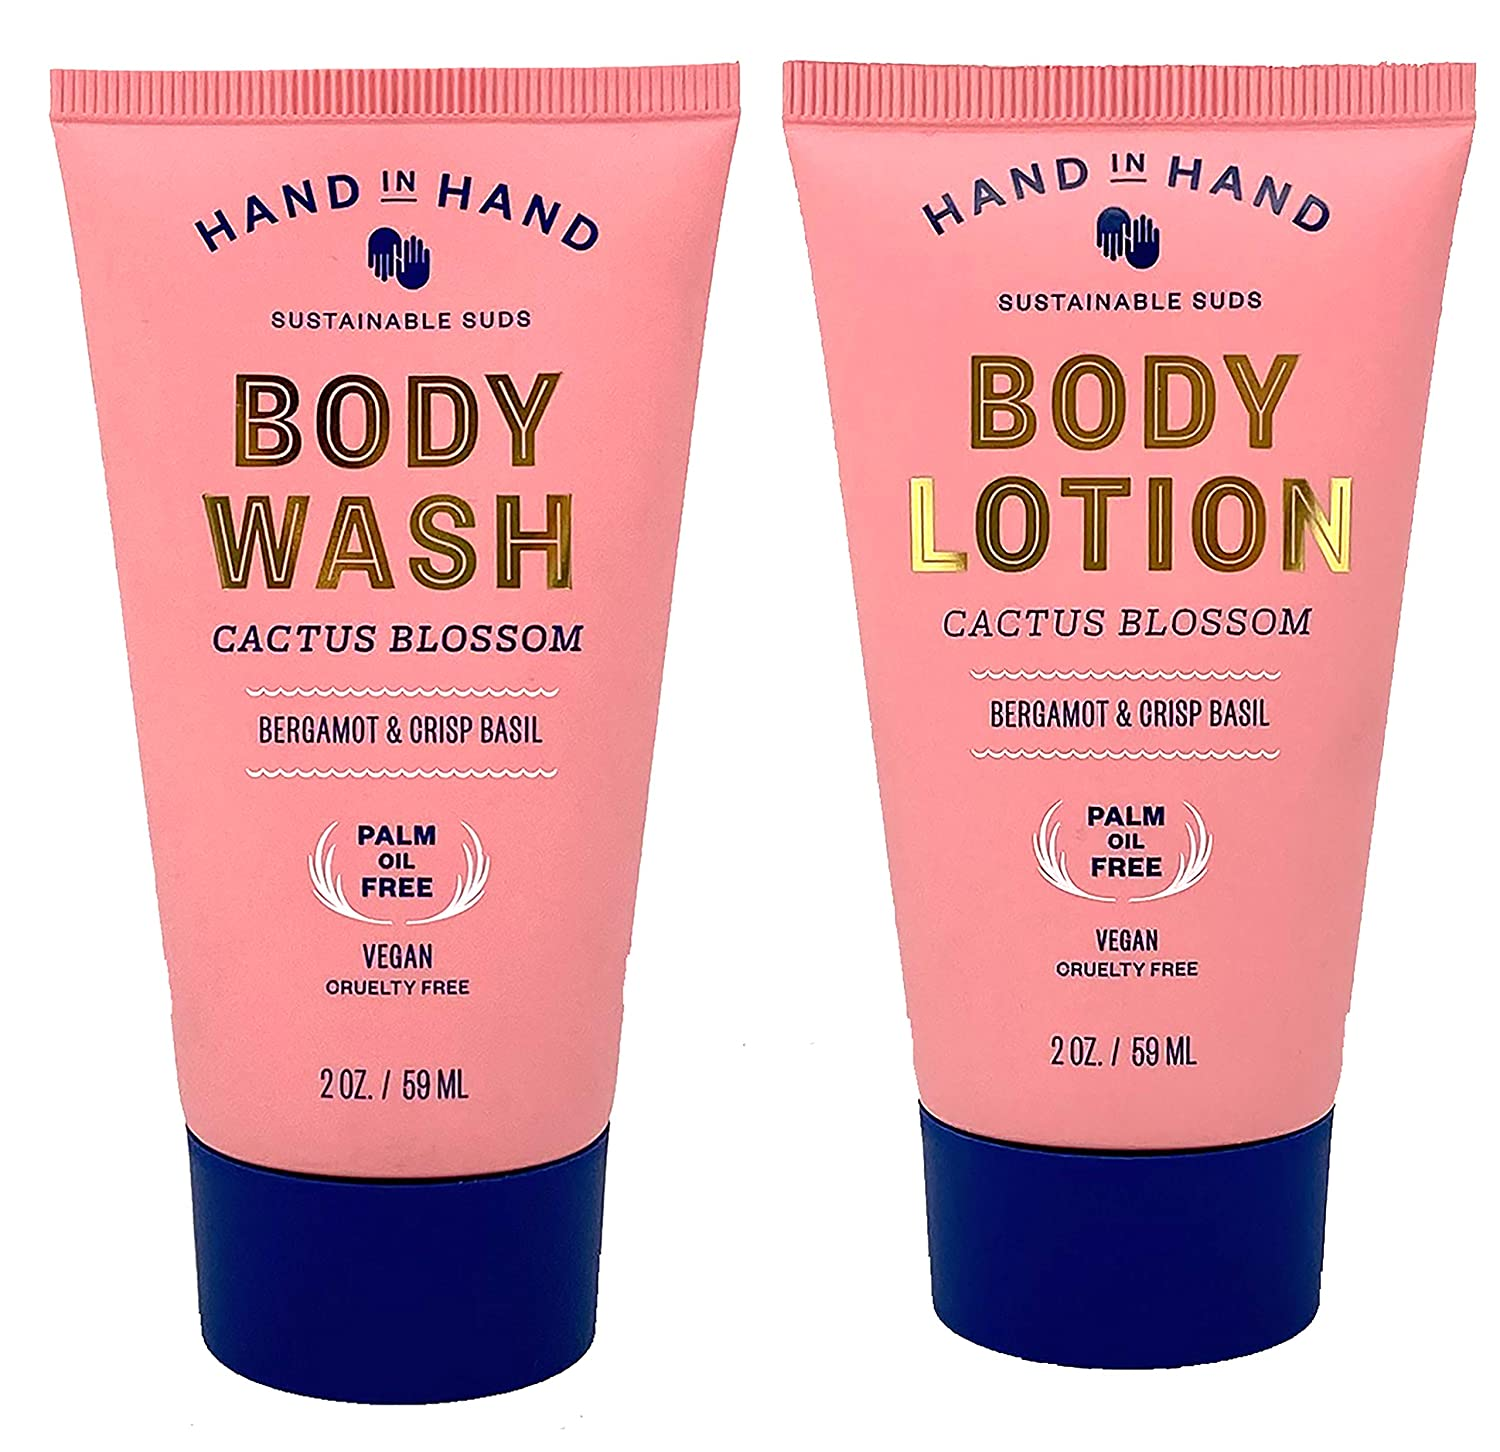 Hand in Hand Cactus Blossom Lotion and Body Wash Set 2 Ounce - Vegan and Cruelty Free